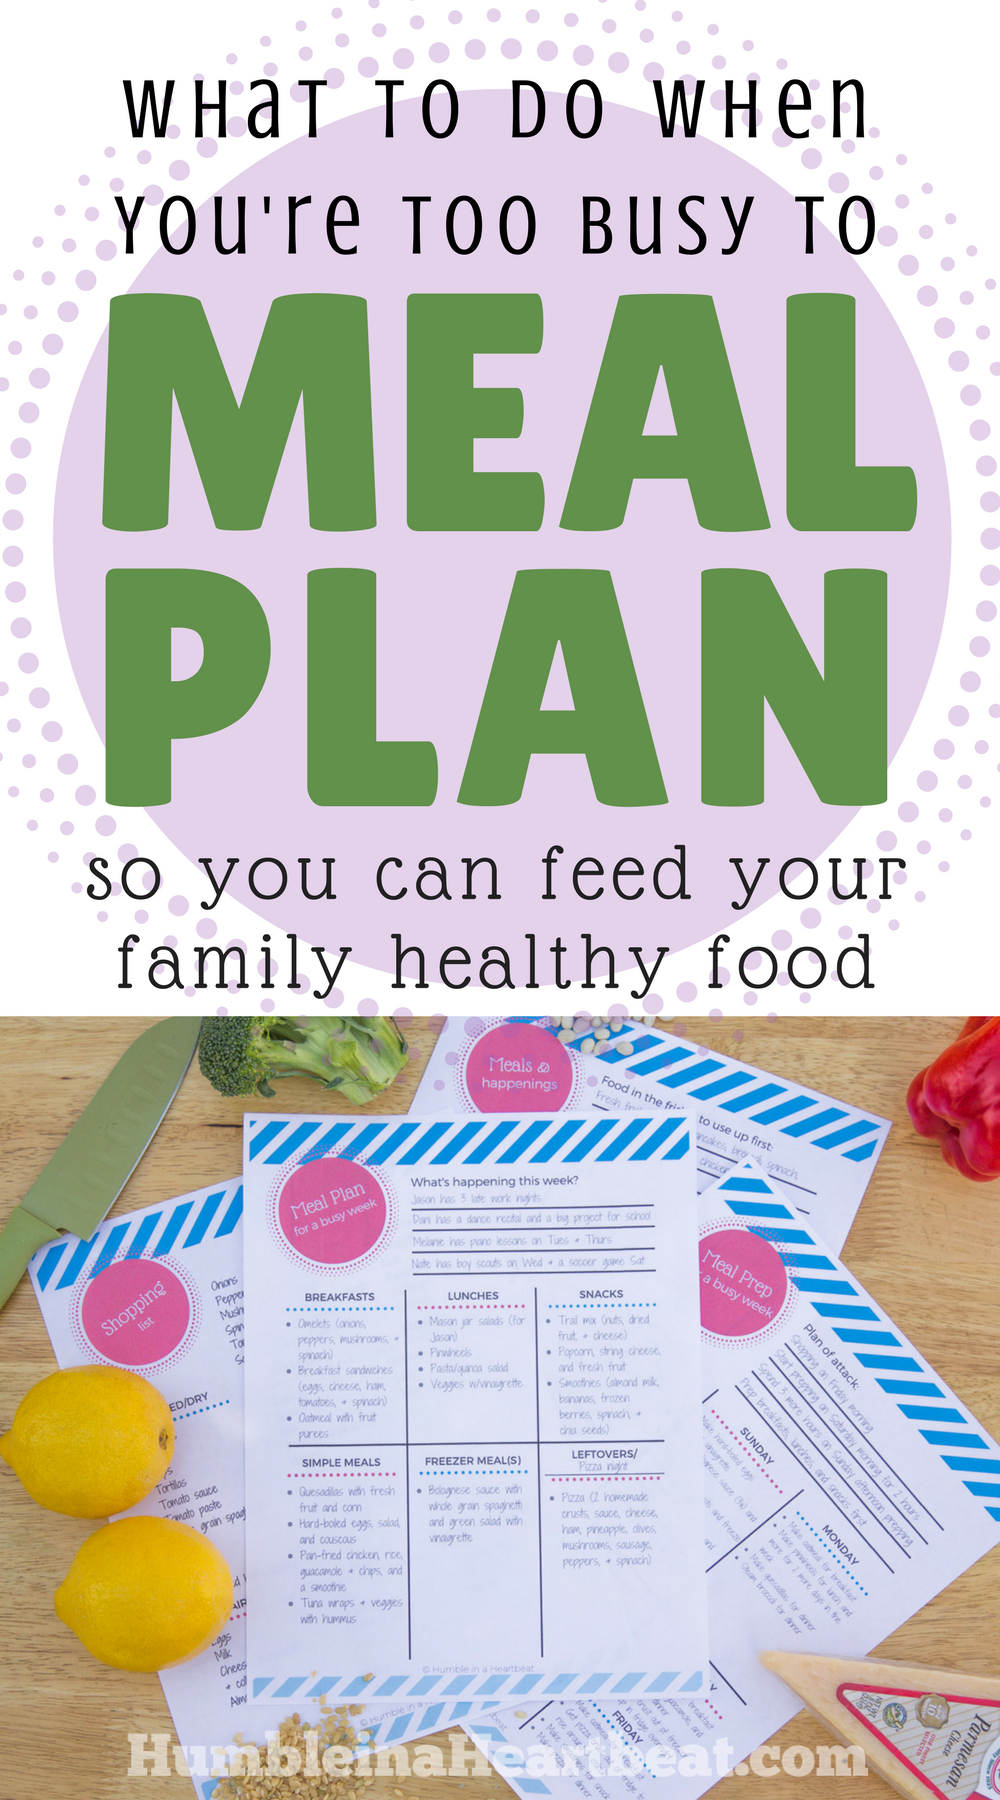 Do you have a plan for feeding your family when life becomes hectic? Instead of waiting for the busy times, plan ahead and you'll be able to get healthy food on the table in less time!